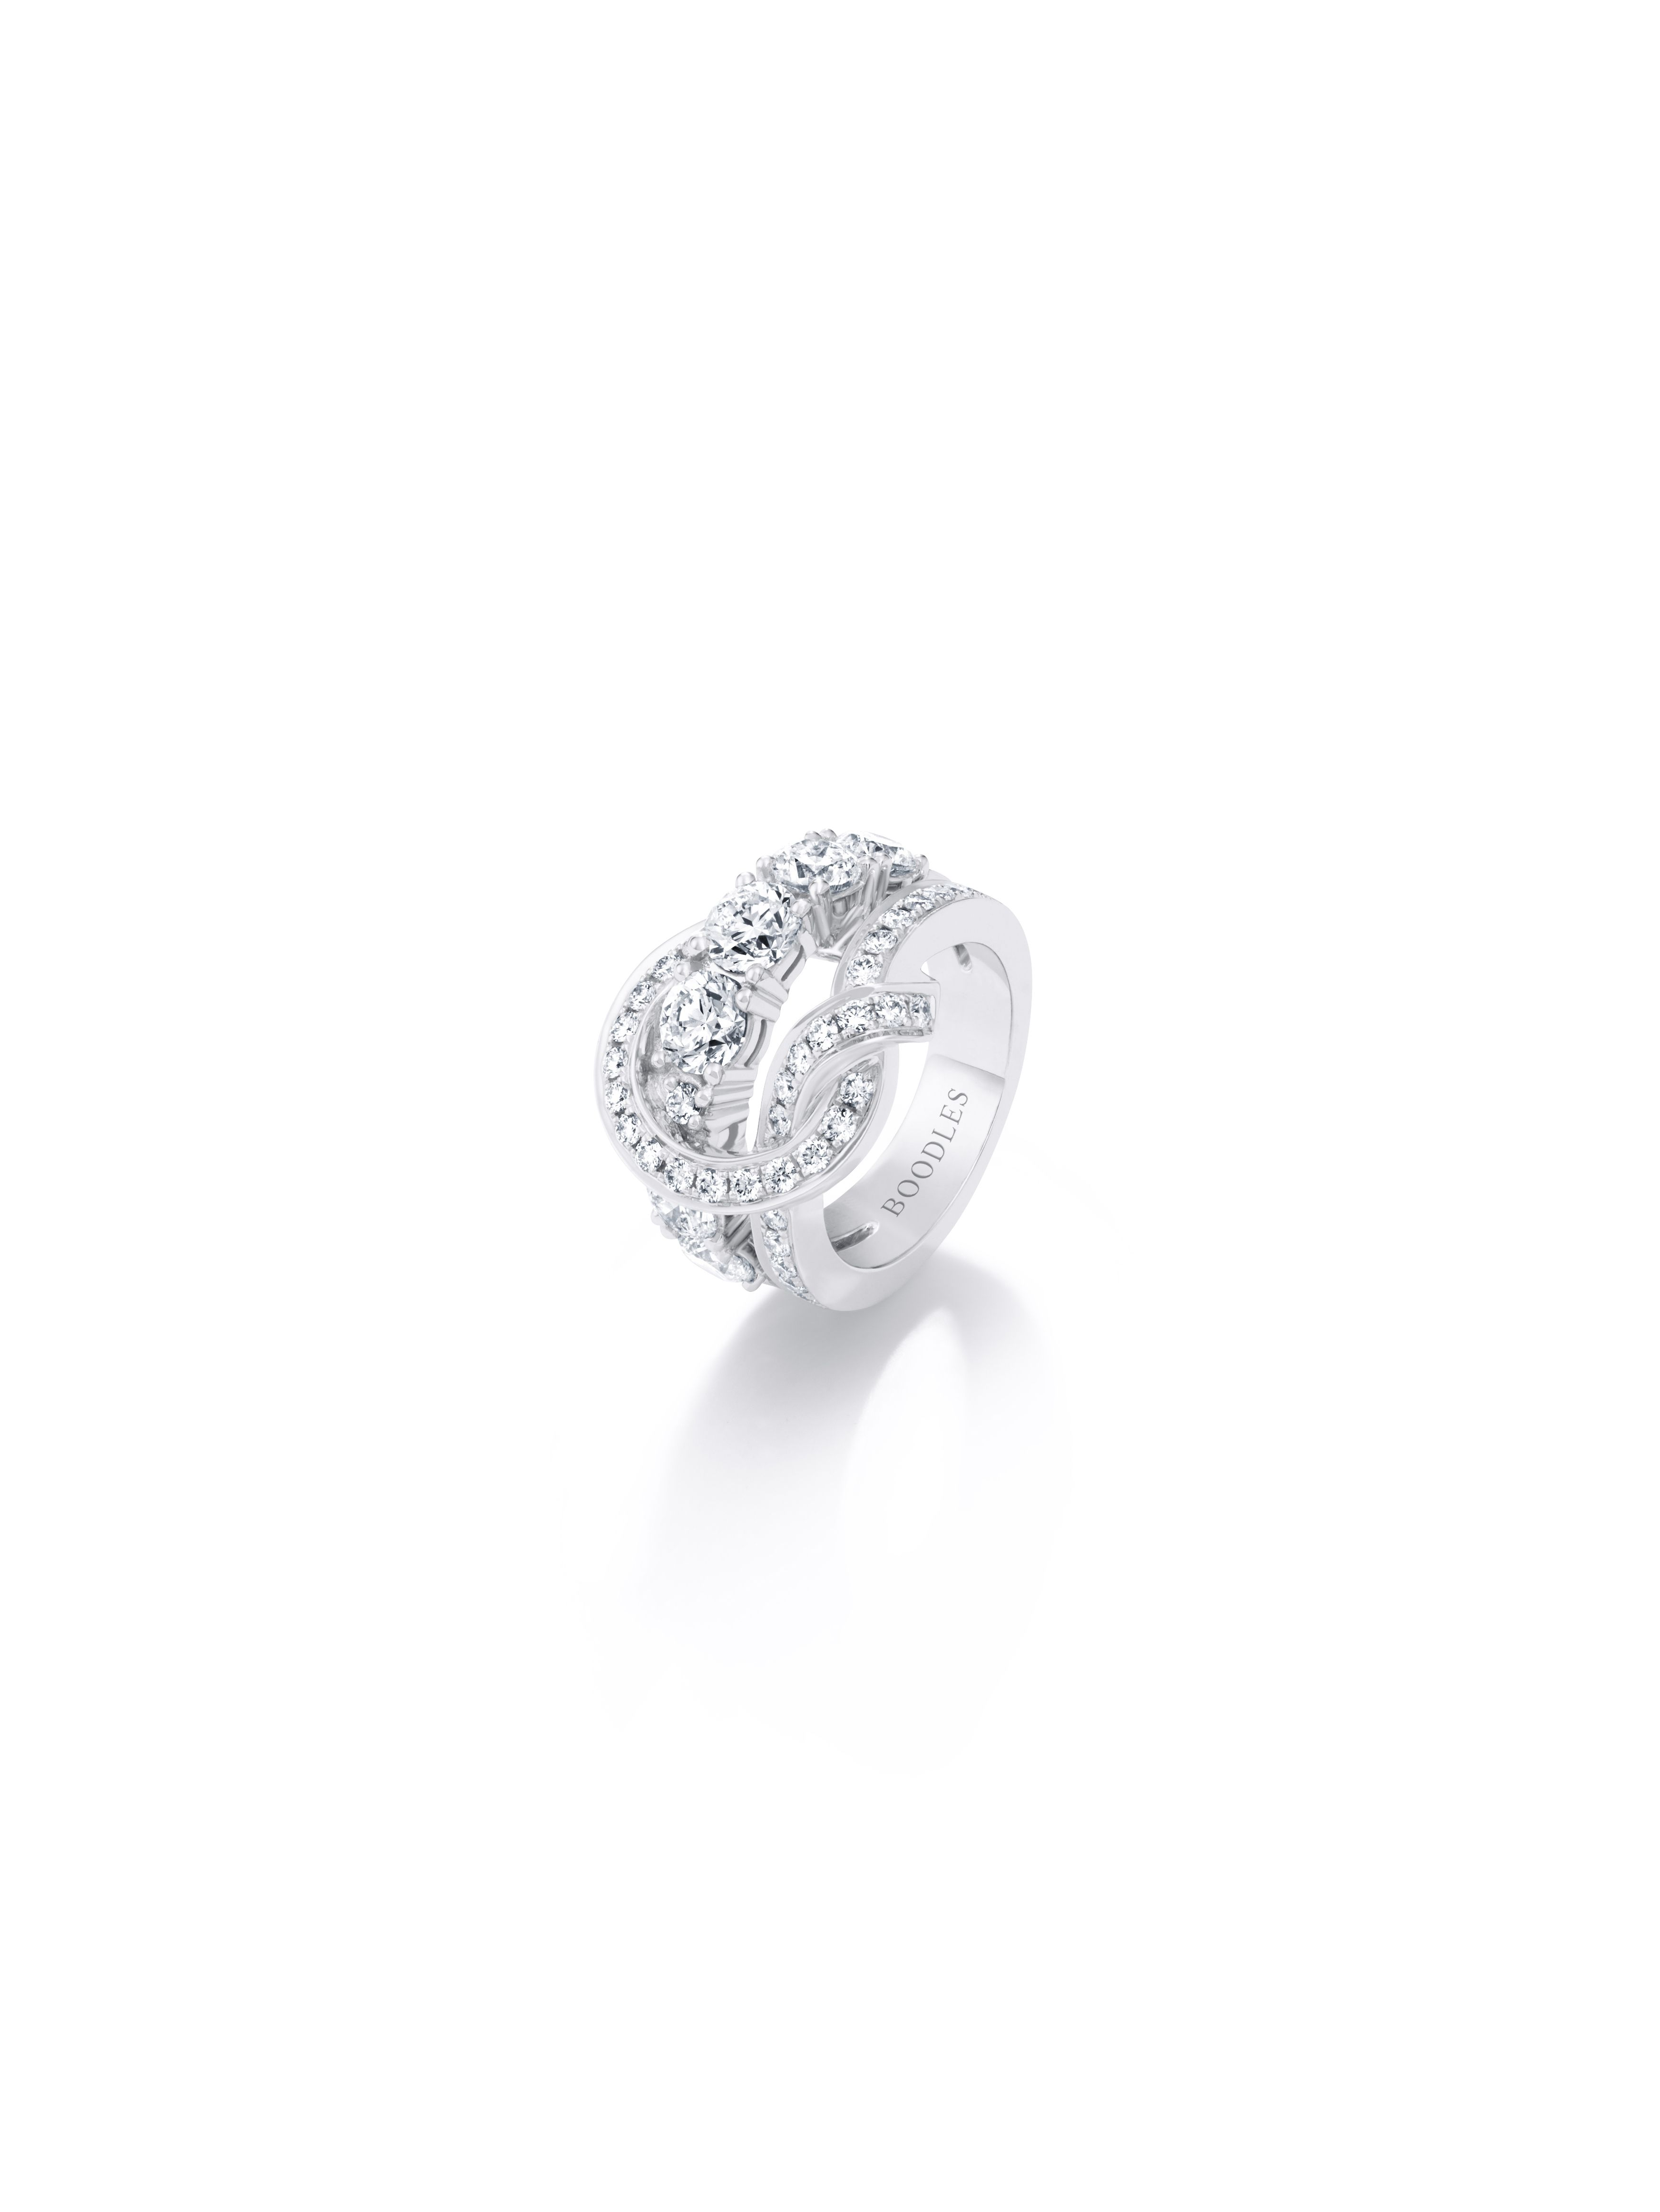 a13f95a57 'The Knot' ring by Boodles www.boodles.com/knot-white-gold-diamond-ring-large.html.  '